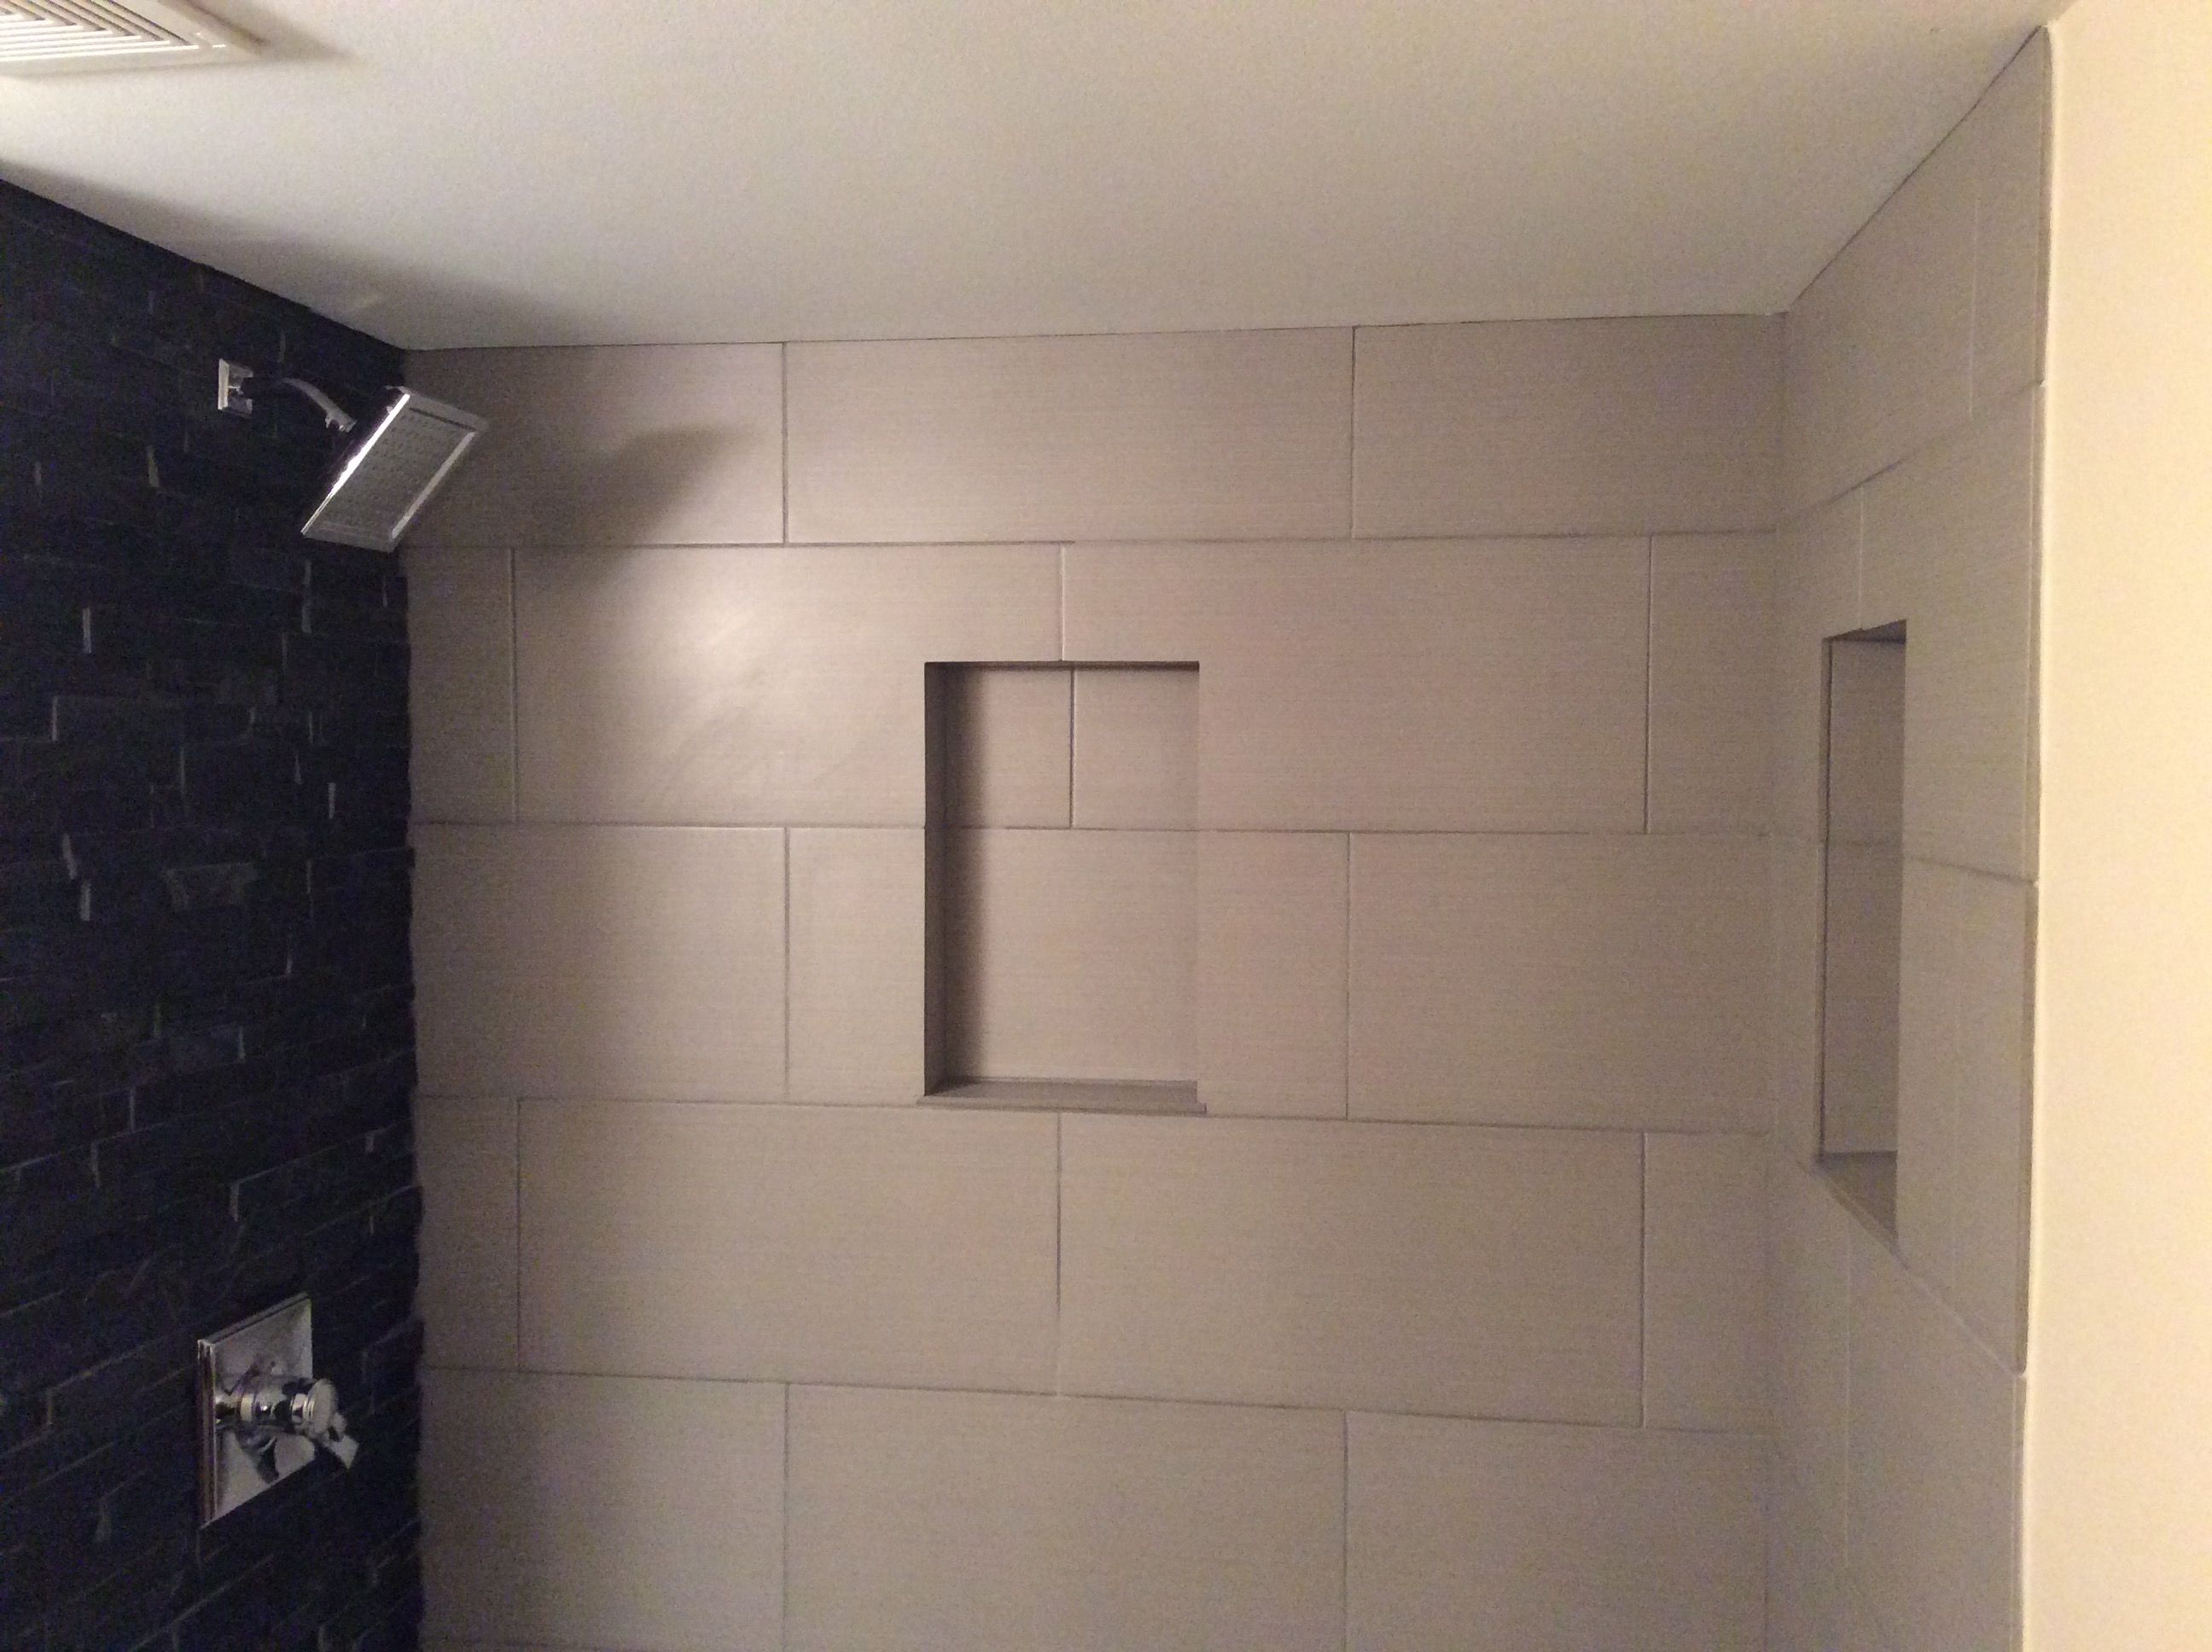 We Used Black Stone Effect Tile And Large White Tile For Shower Walls With  Niche And Custom Shower Base.